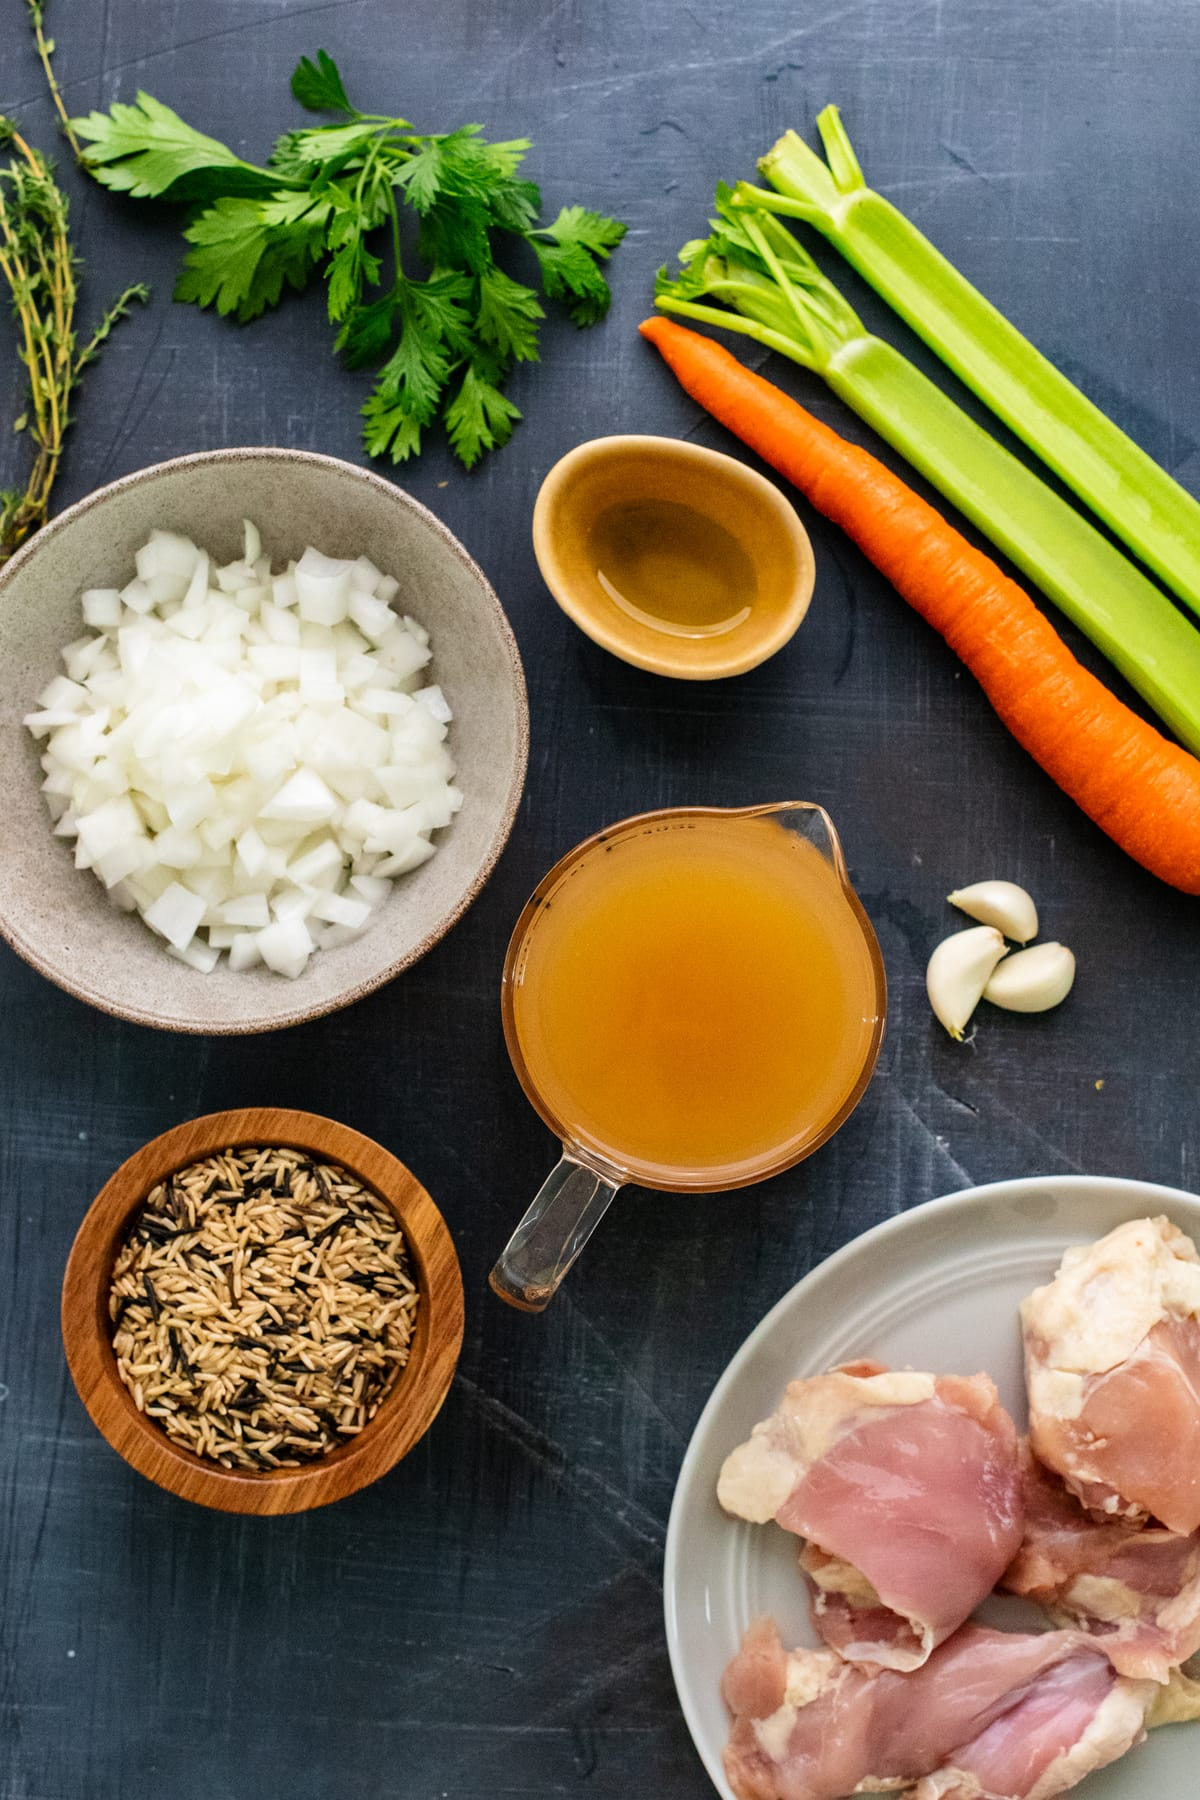 Ingredients for chicken and rice soup arranged on dark gray background.